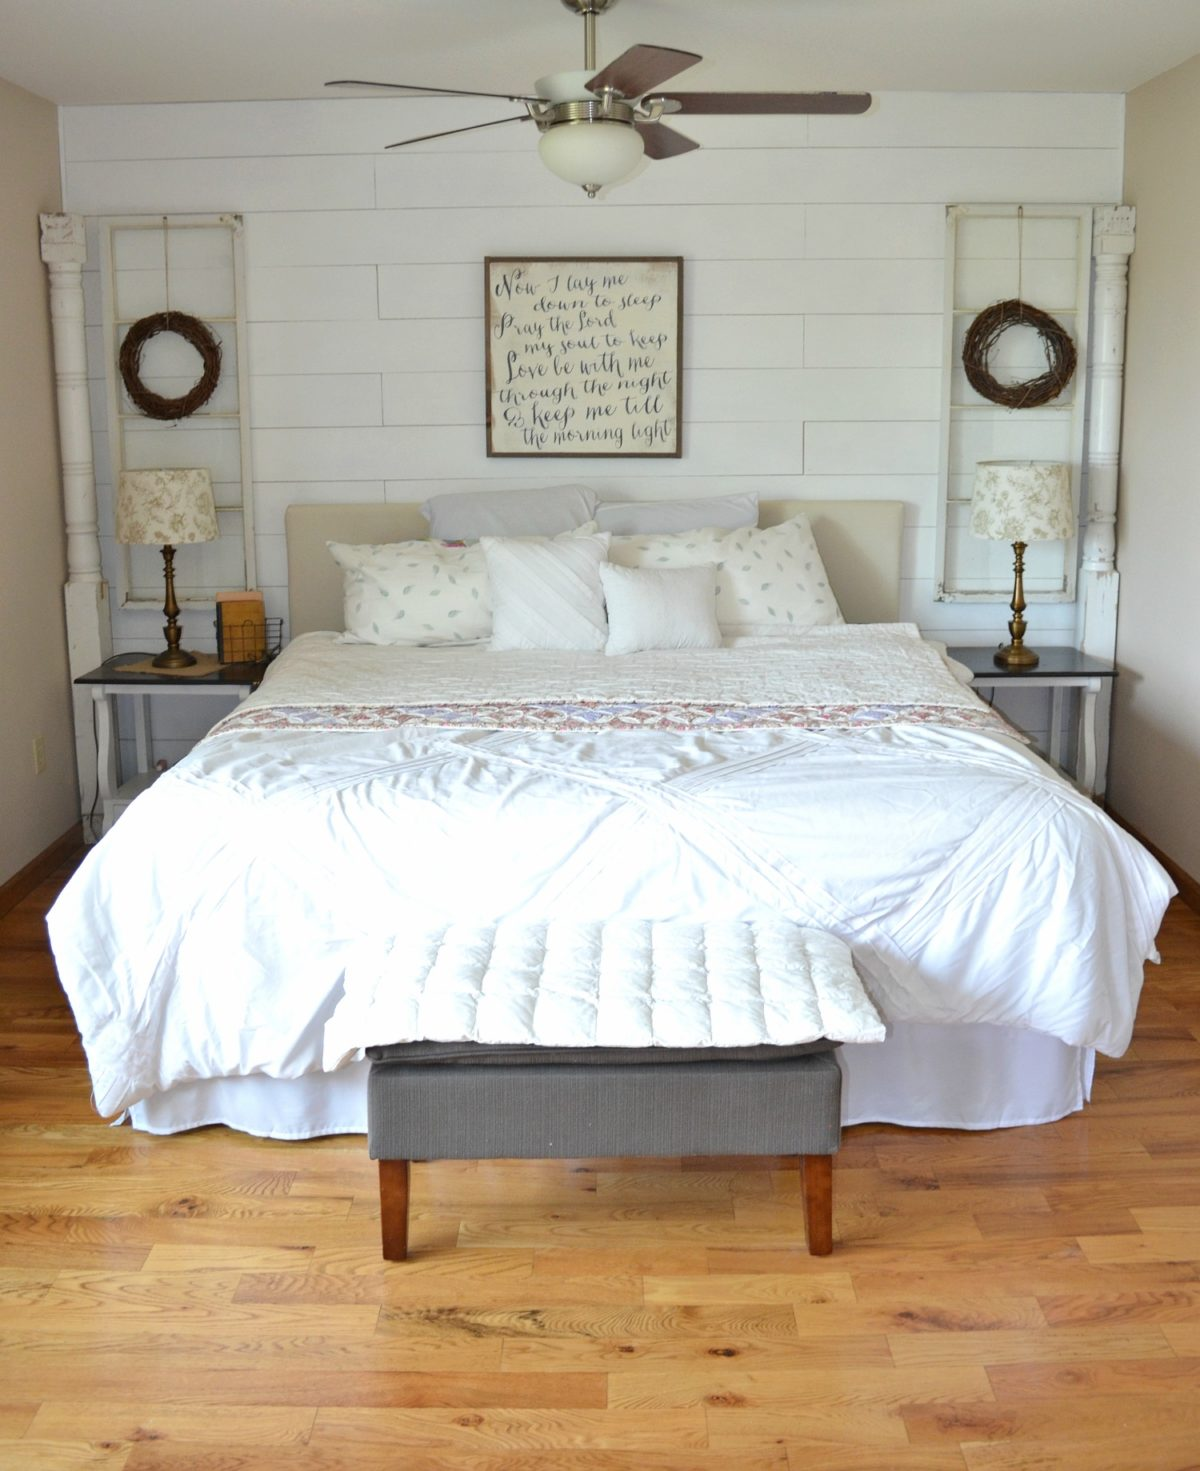 Farmhouse Bedroom: 4 Reasons You Should Decorate With Old Windows